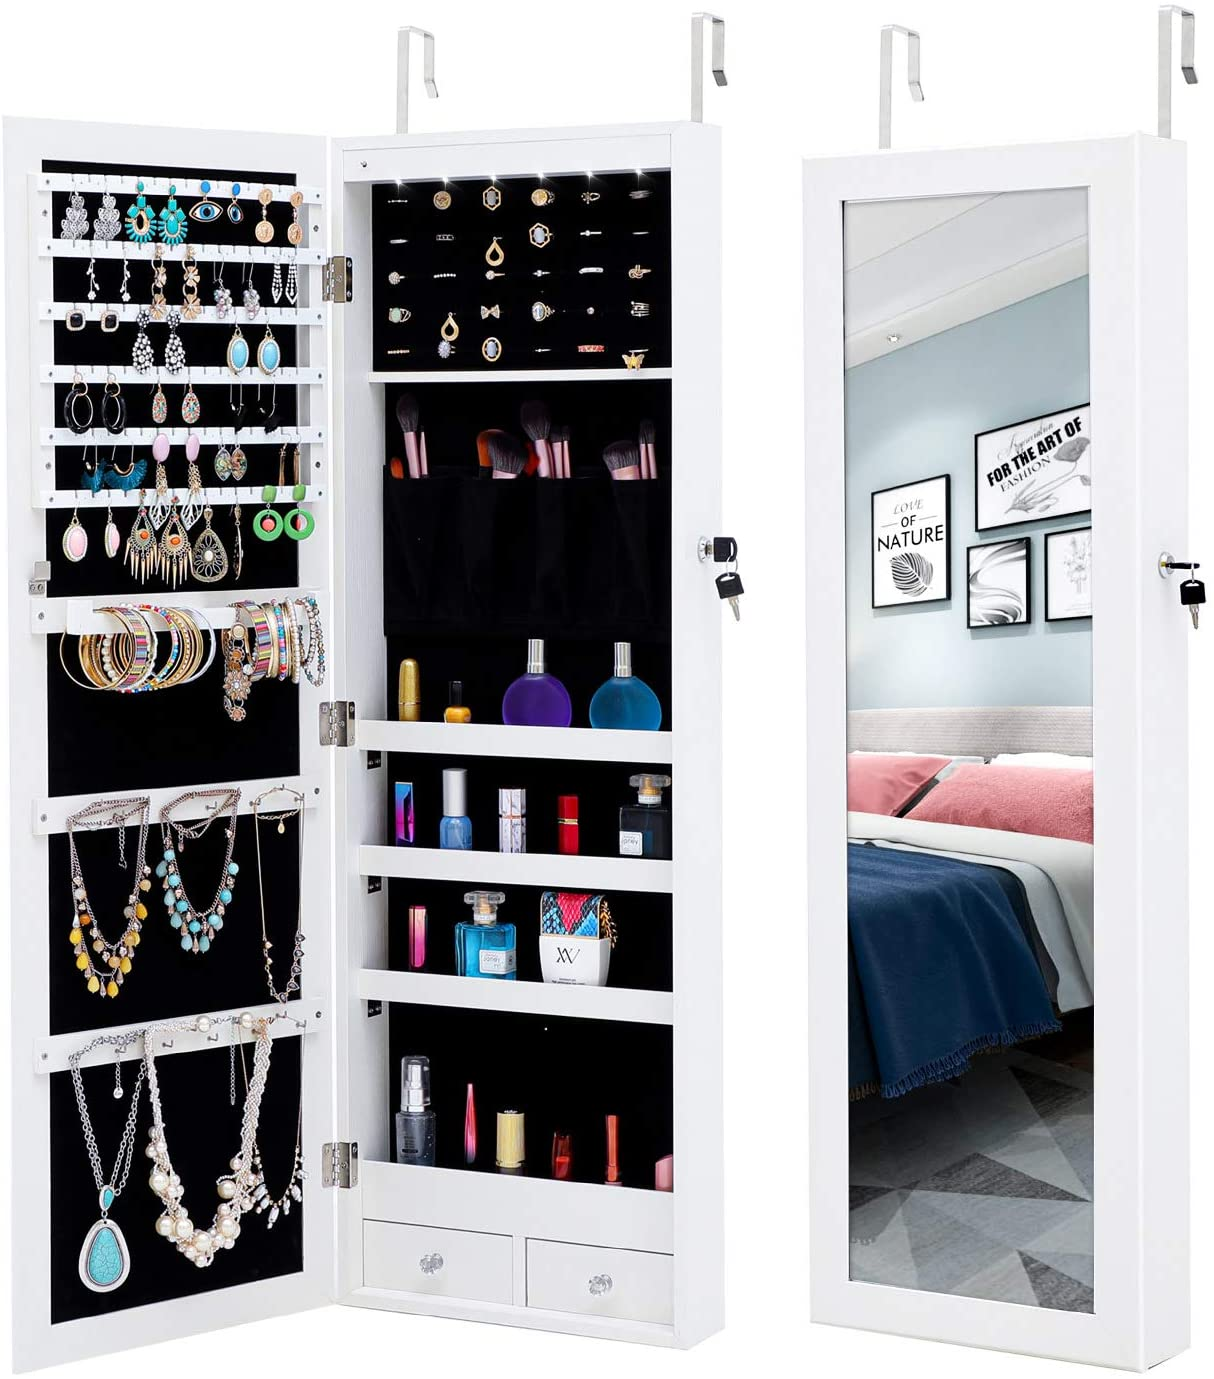 MIYACA 6 LEDs Jewelry Mirror Armoire Organizer, Lockable Jewelry Cabinet Wall/Door Mounted, with Full Length Dressing Mirror and Larger Capacity, White